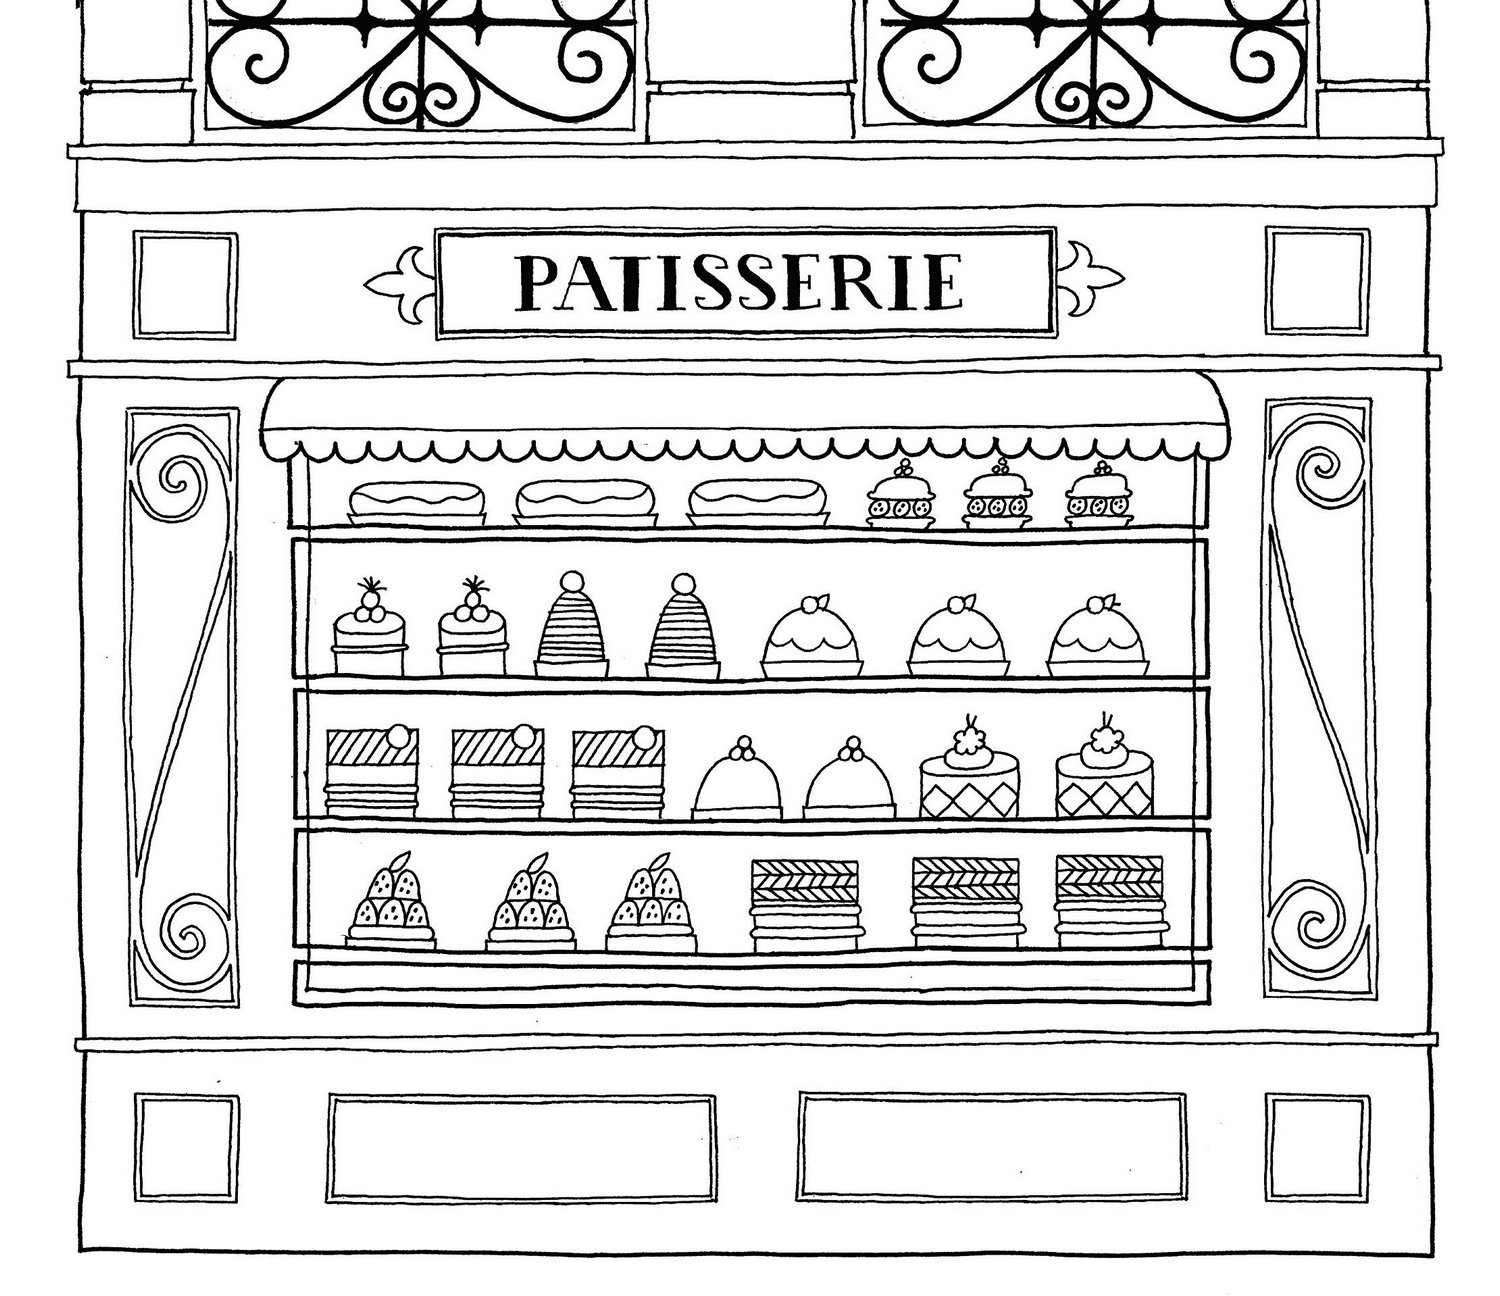 Patisserie-Paris-Coloring-Pages